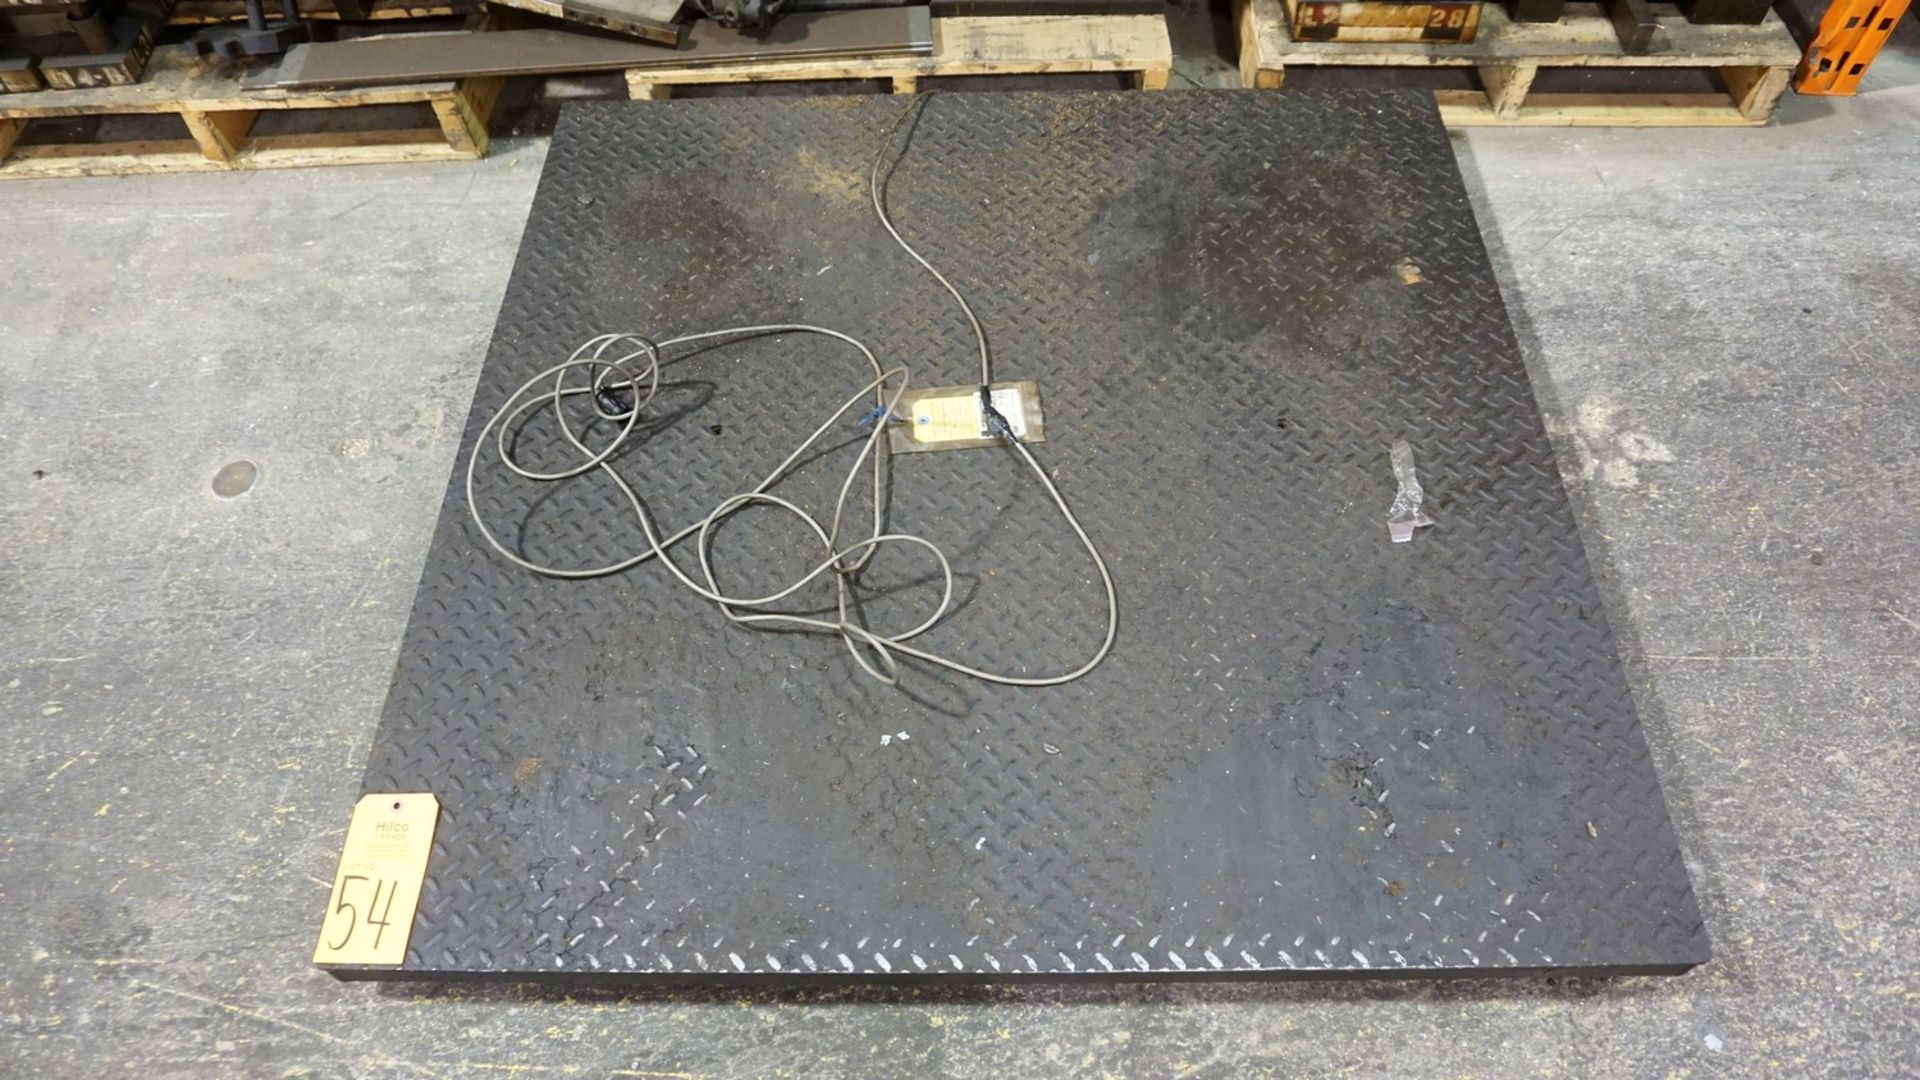 Lot 54 - Platform Scale (No DRO)